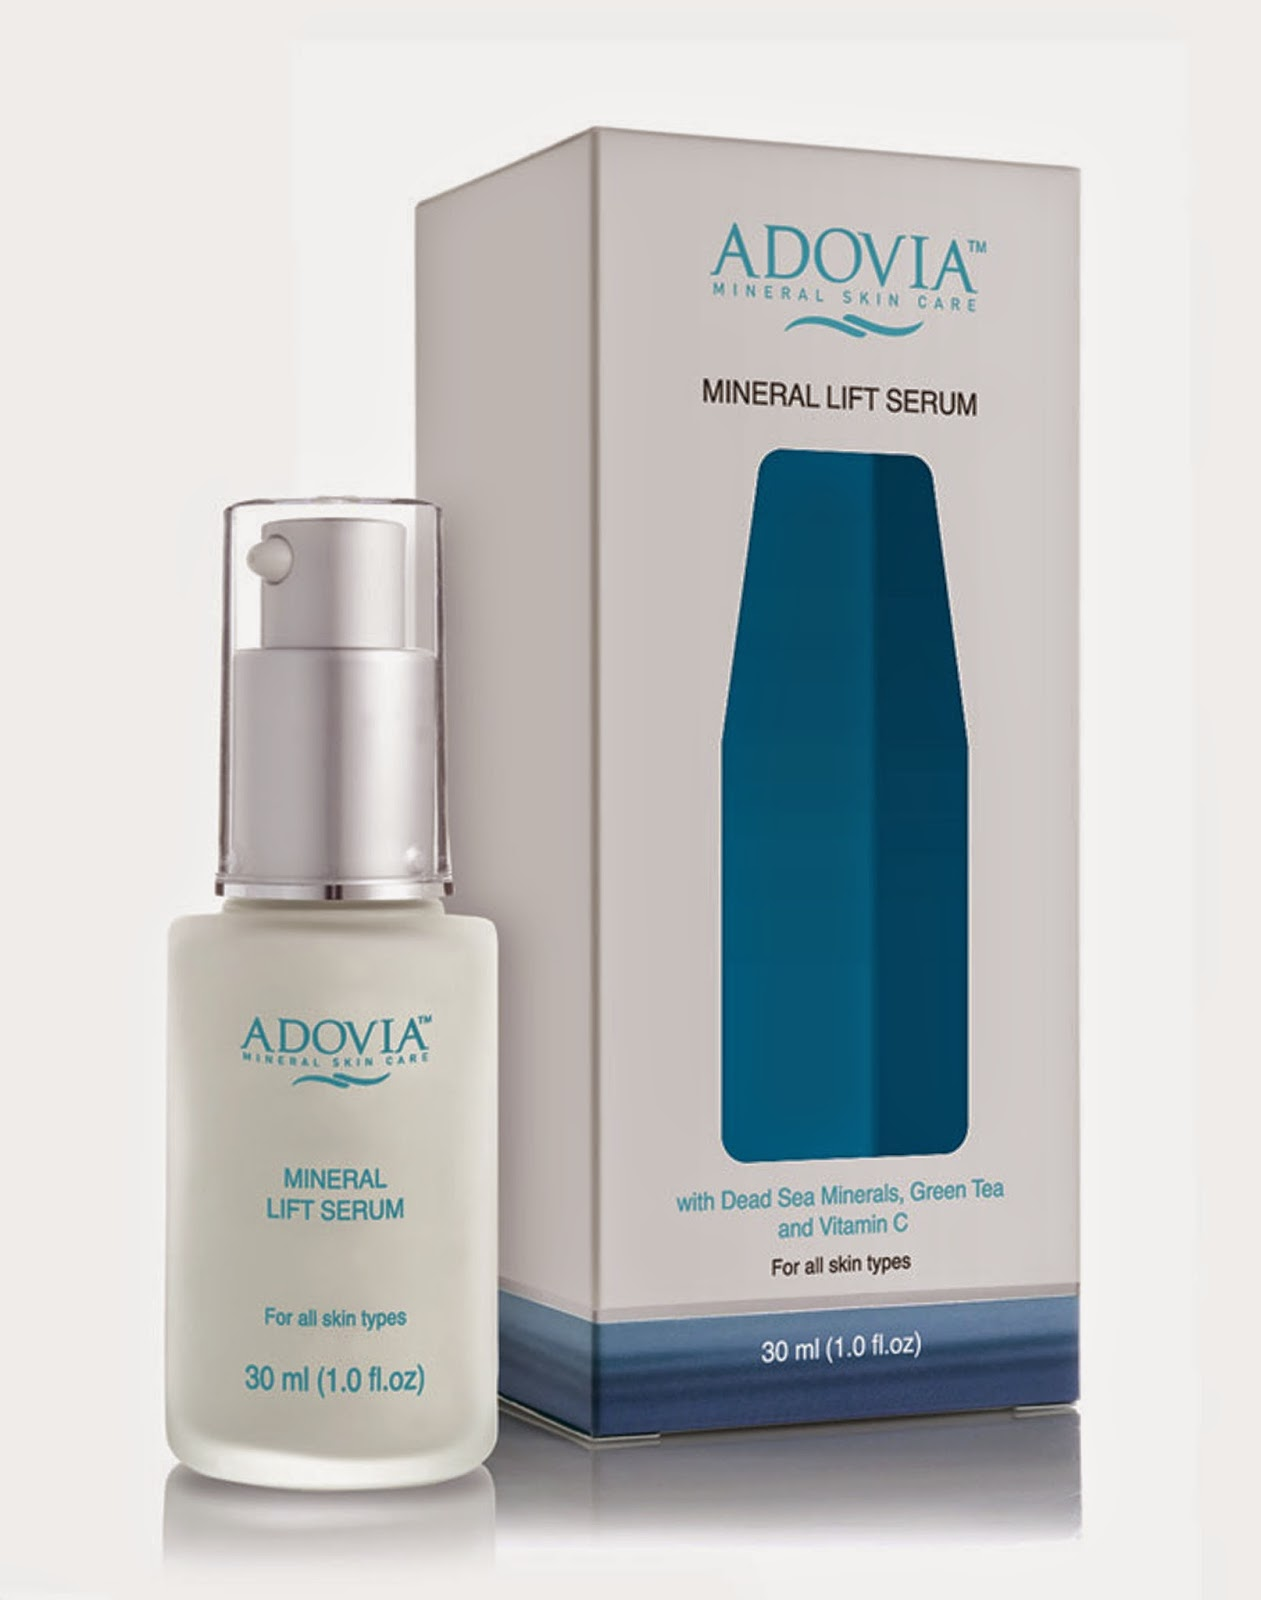 Dead Sea Minerals Vitamin C Adovia Mineral Lift Serum Amazon